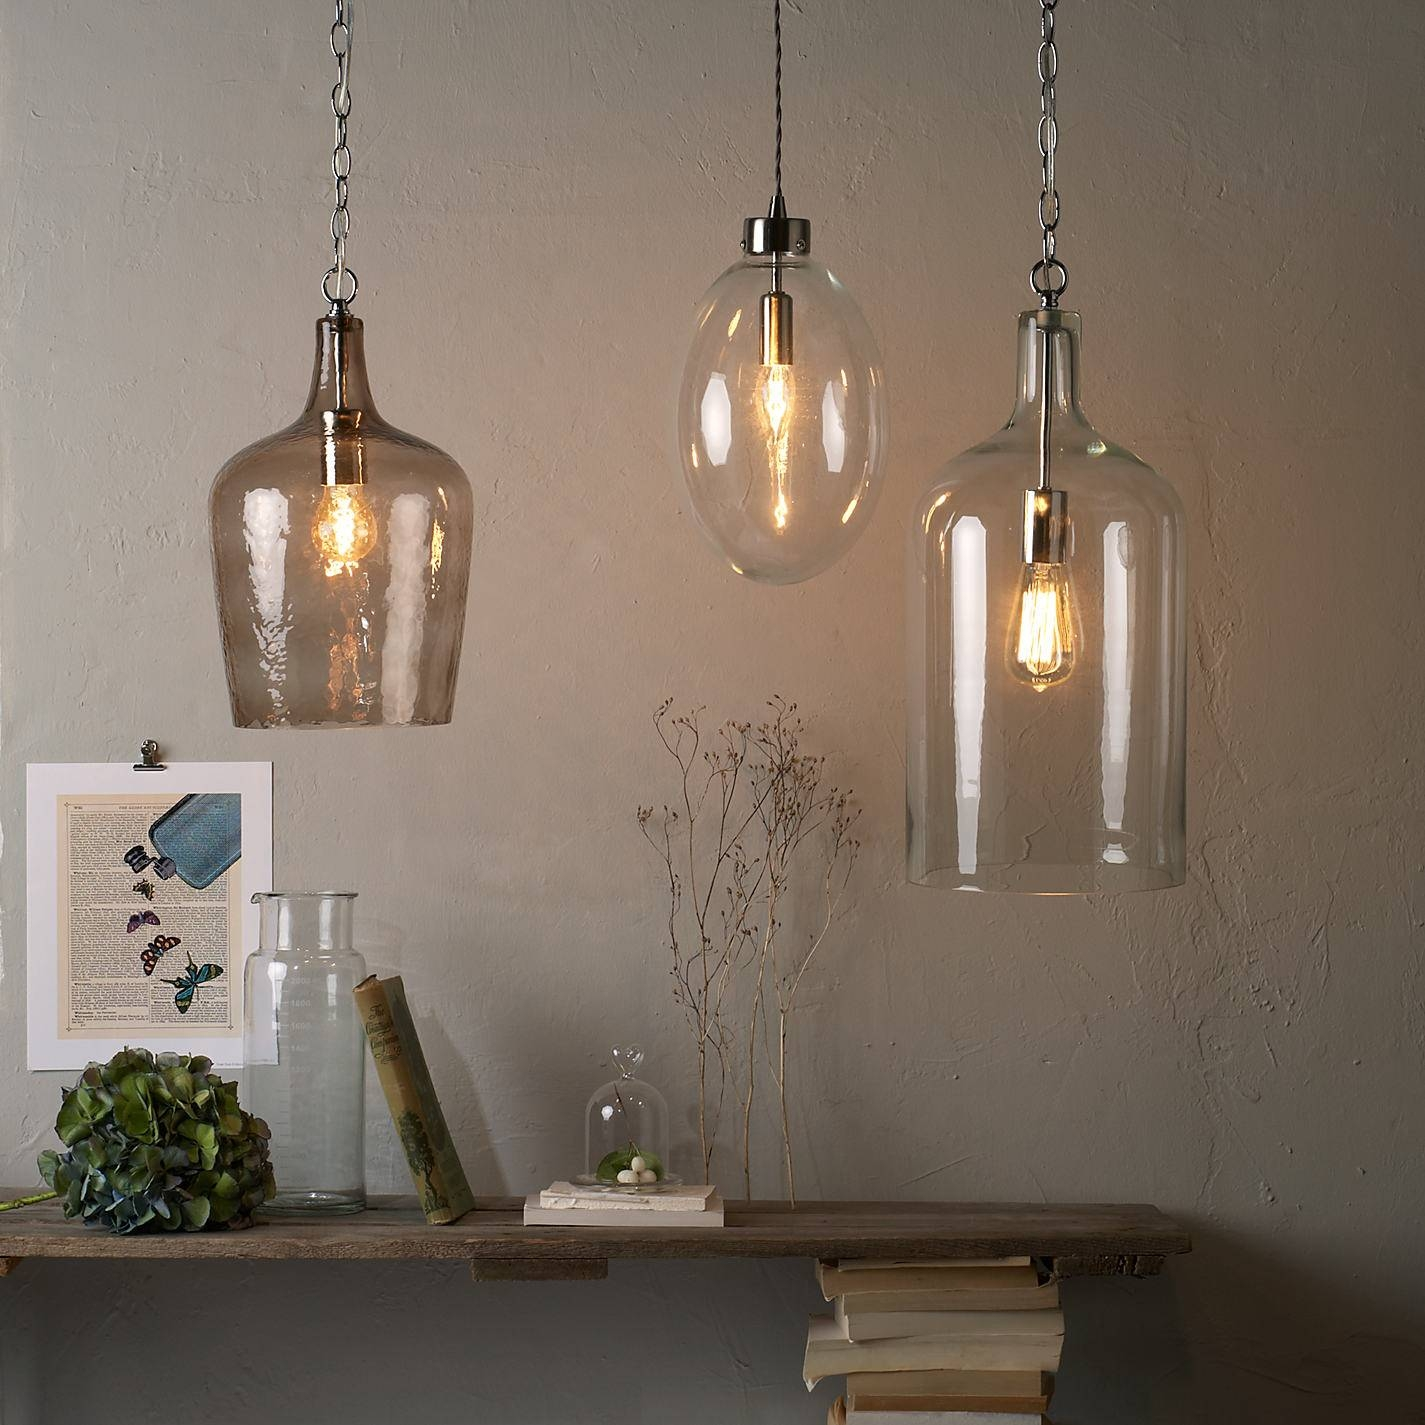 Instant Pendant Lights - Baby-Exit pertaining to Instant Pendant Lights (Image 6 of 15)